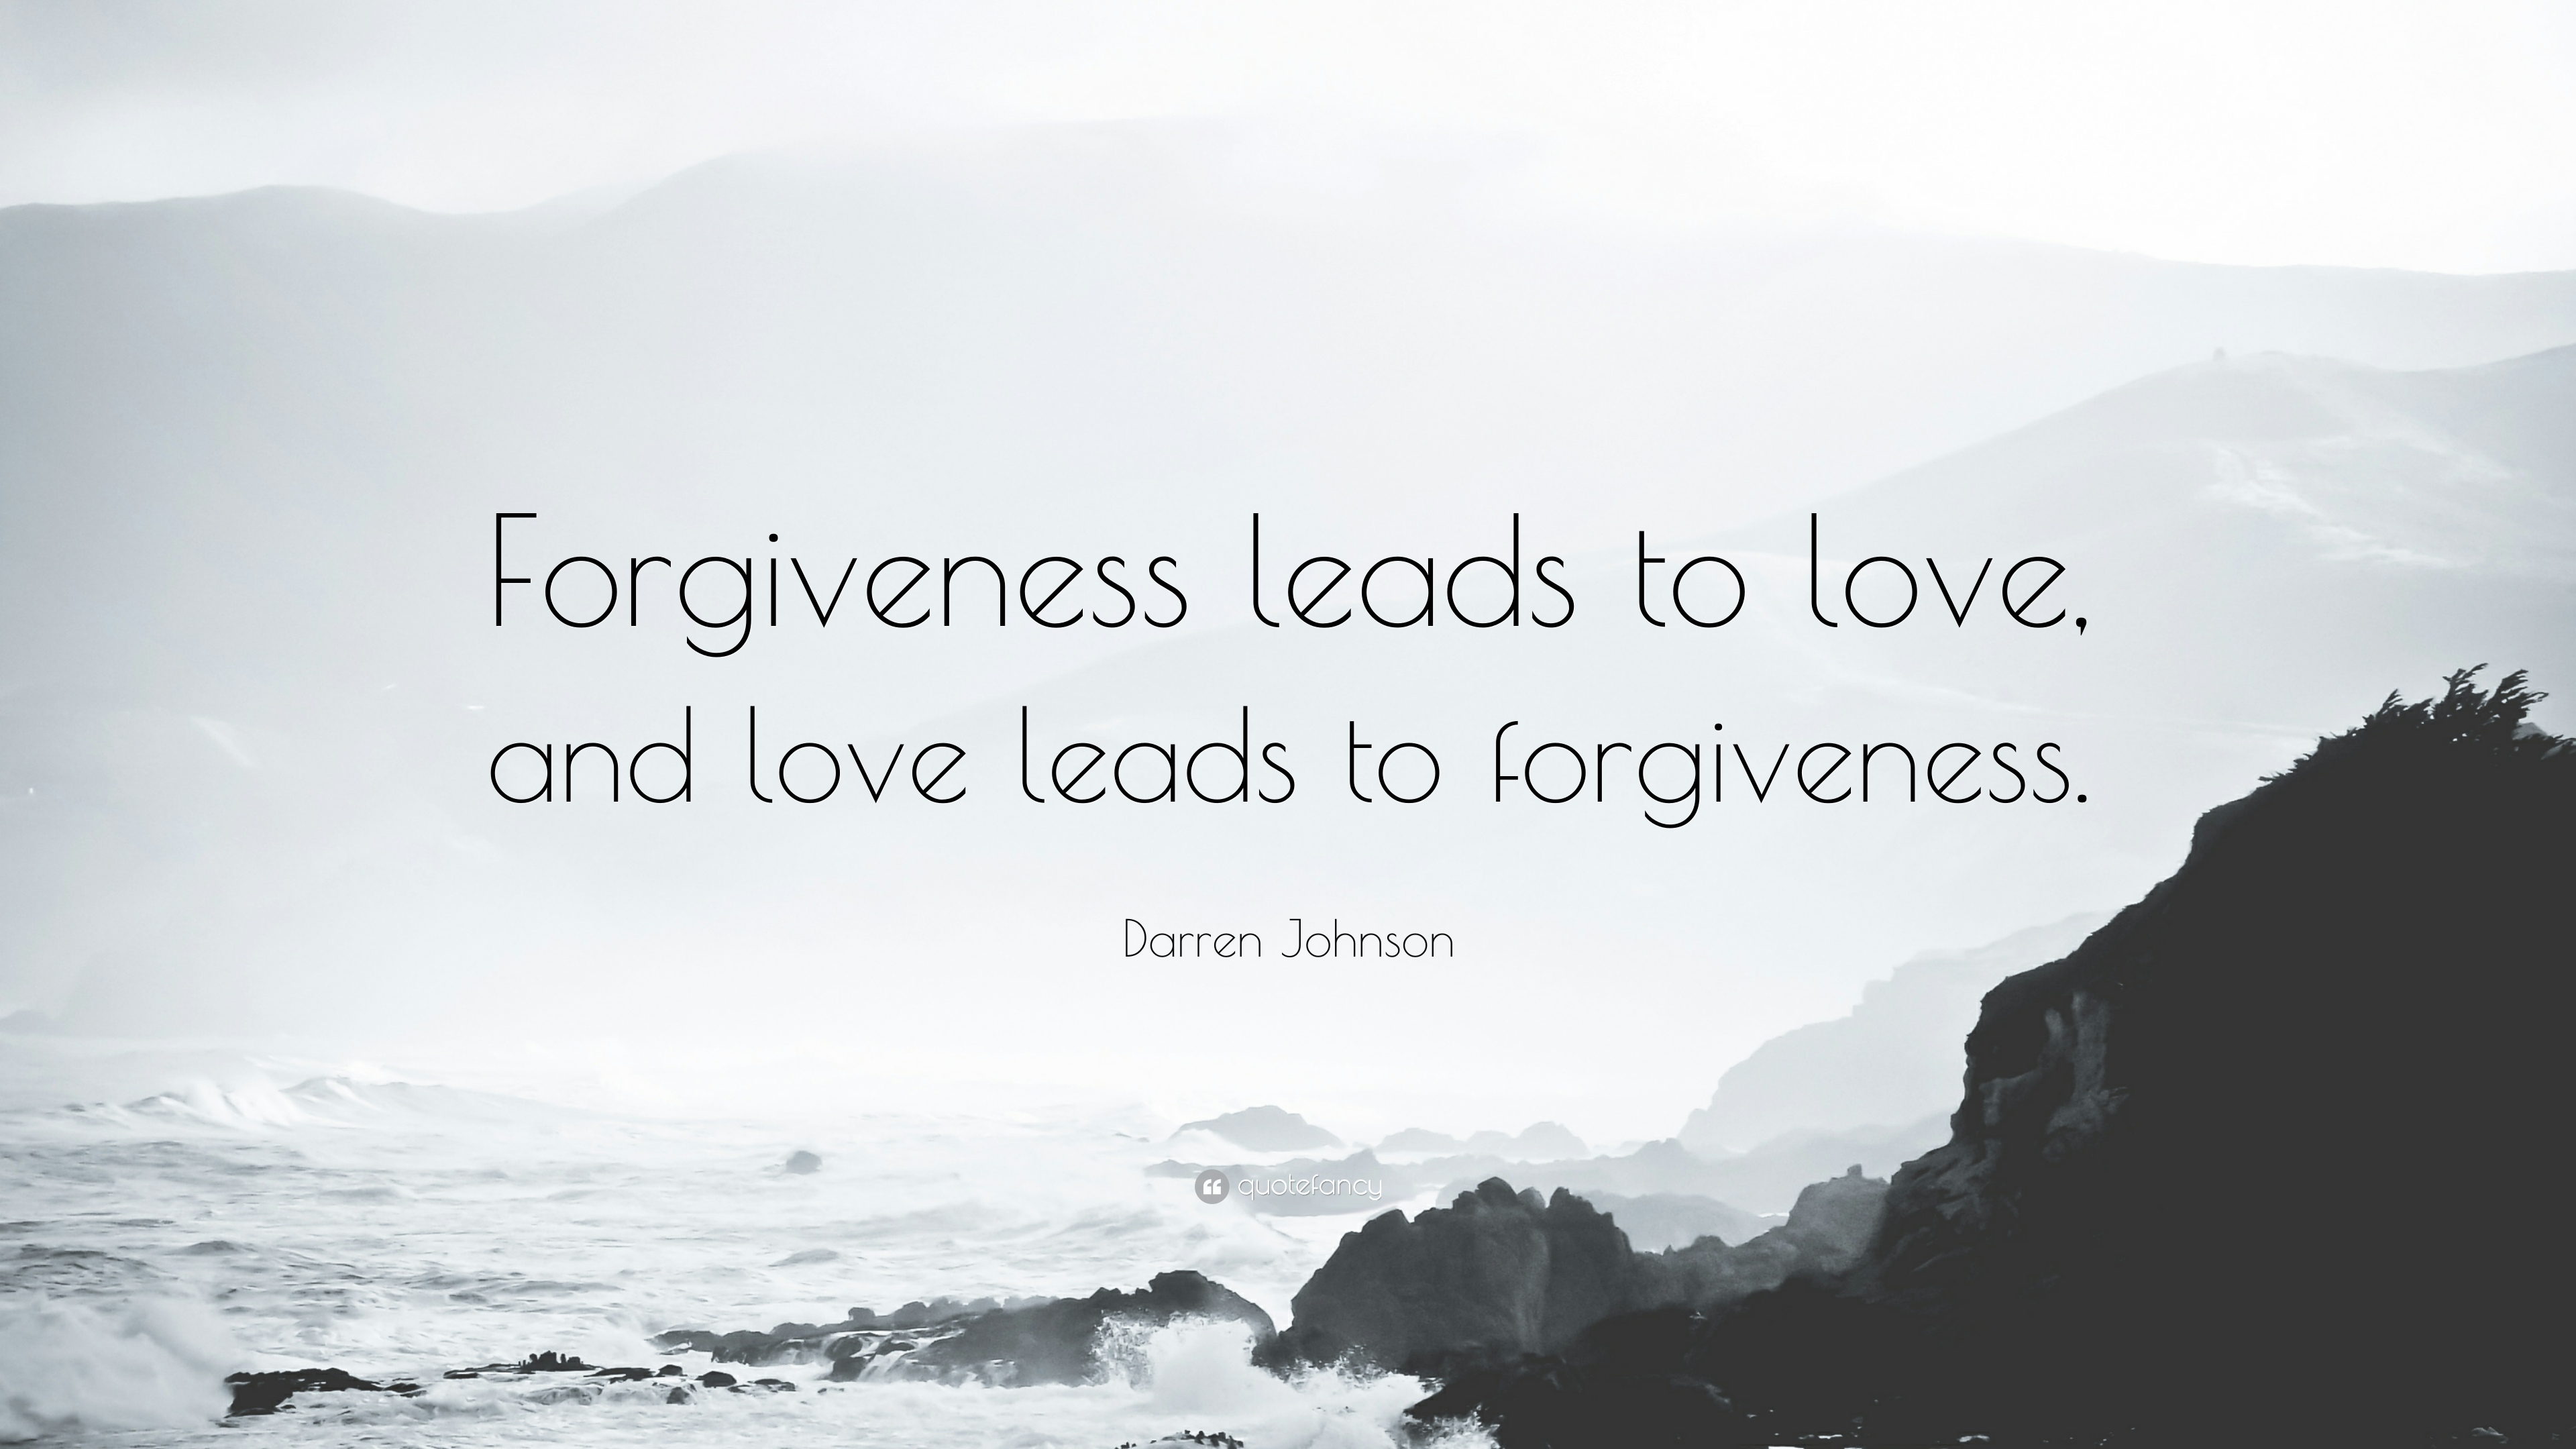 Attrayant Darren Johnson Quote: U201cForgiveness Leads To Love, And Love Leads To  Forgiveness.